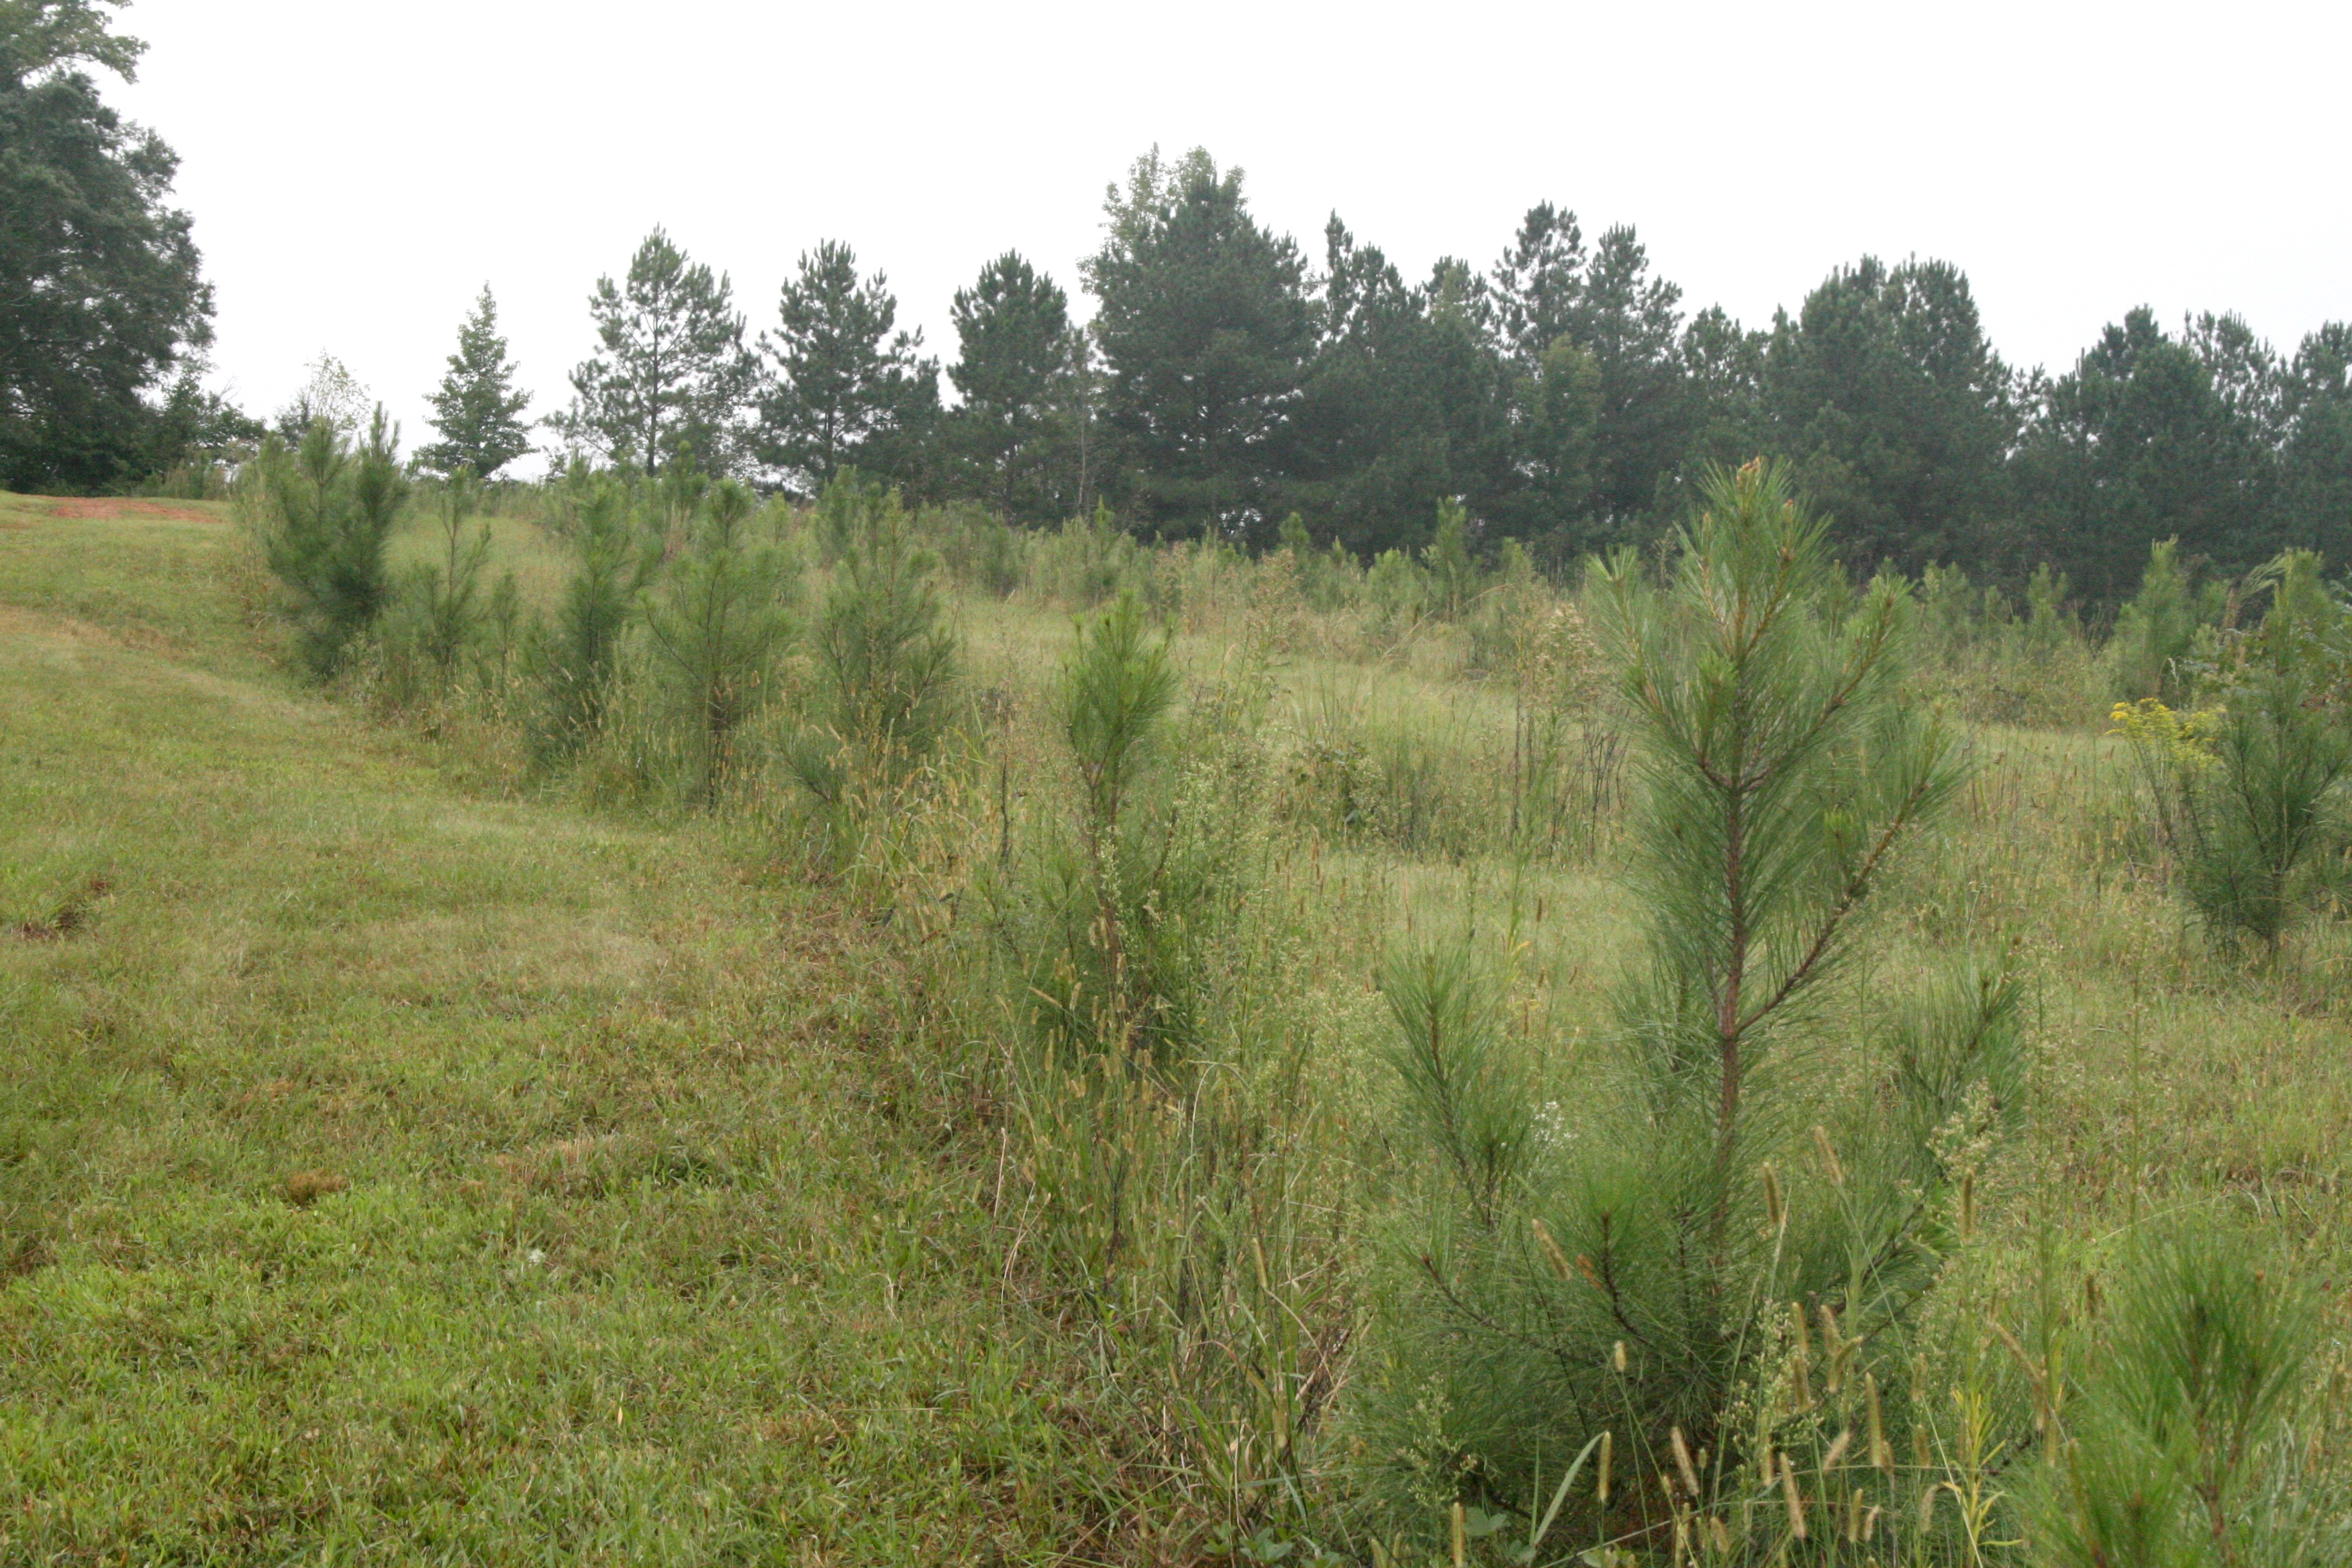 A row of pines at the Westbrook Research Farm on the UGA campus in Griffin, Georgia.